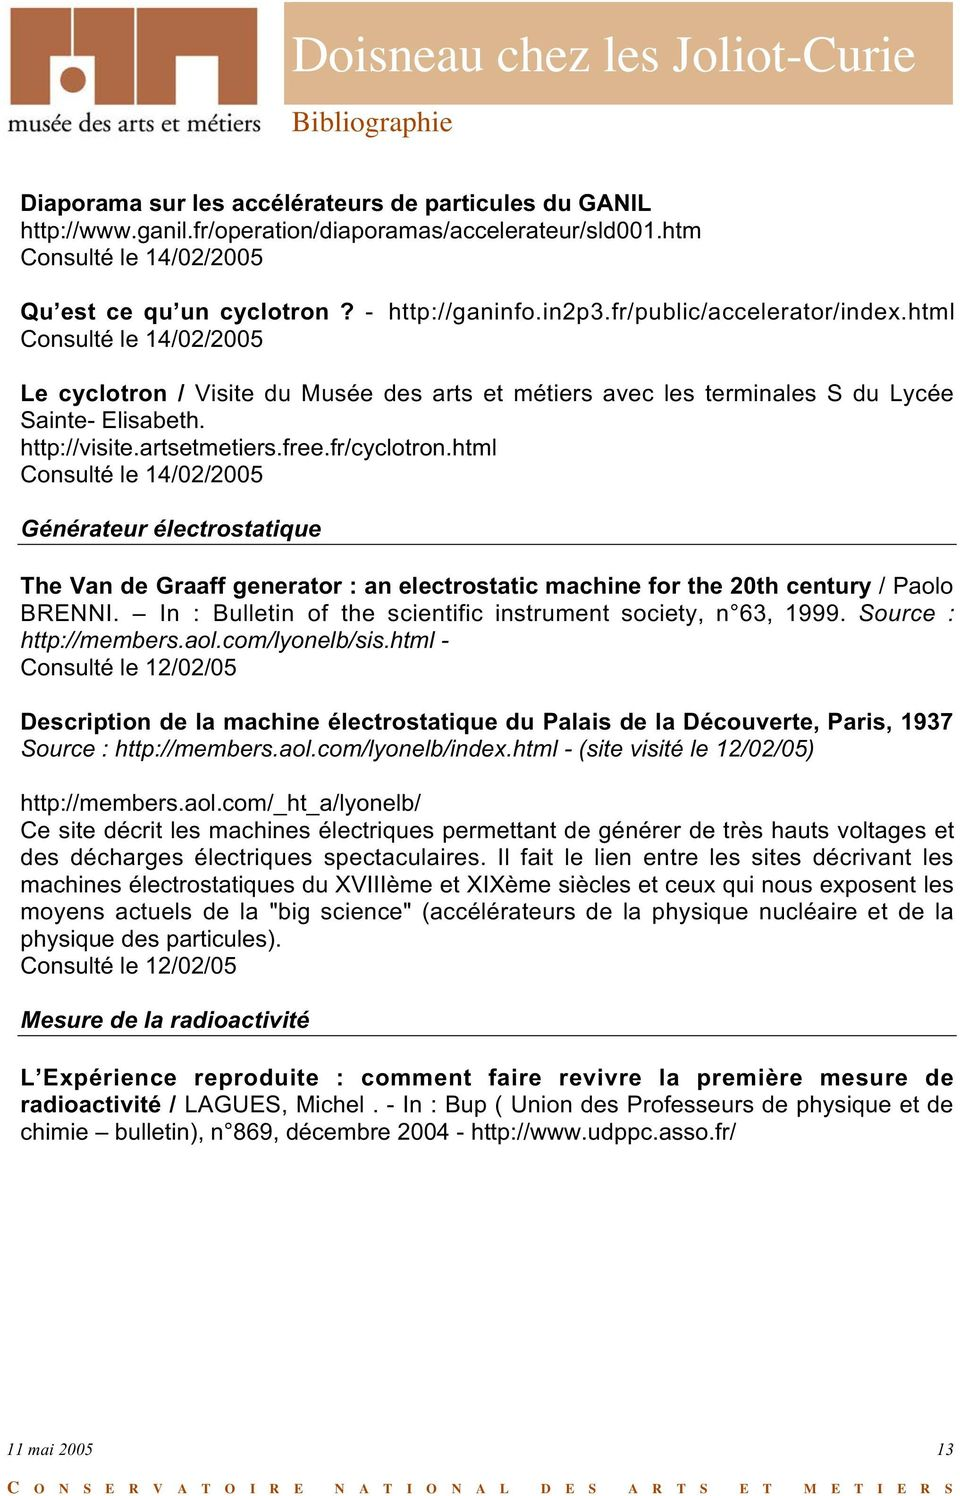 html Générateur électrostatique The Van de Graaff generator : an electrostatic machine for the 20th century / Paolo BRENNI. In : Bulletin of the scientific instrument society, n 63, 1999.